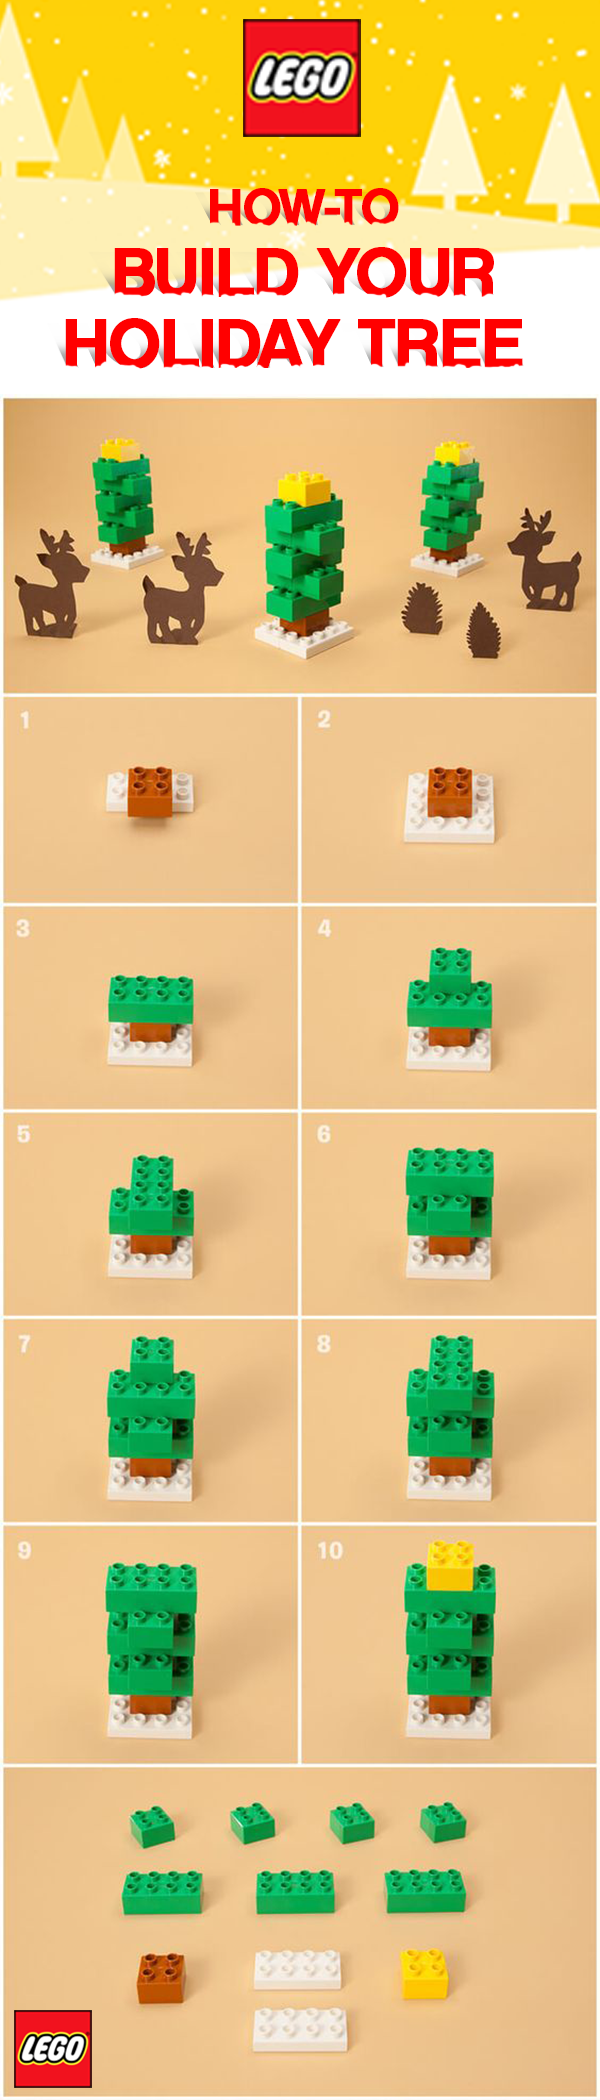 Easy Build Instructions To Create Your Own Lego Duplo Holiday Tree